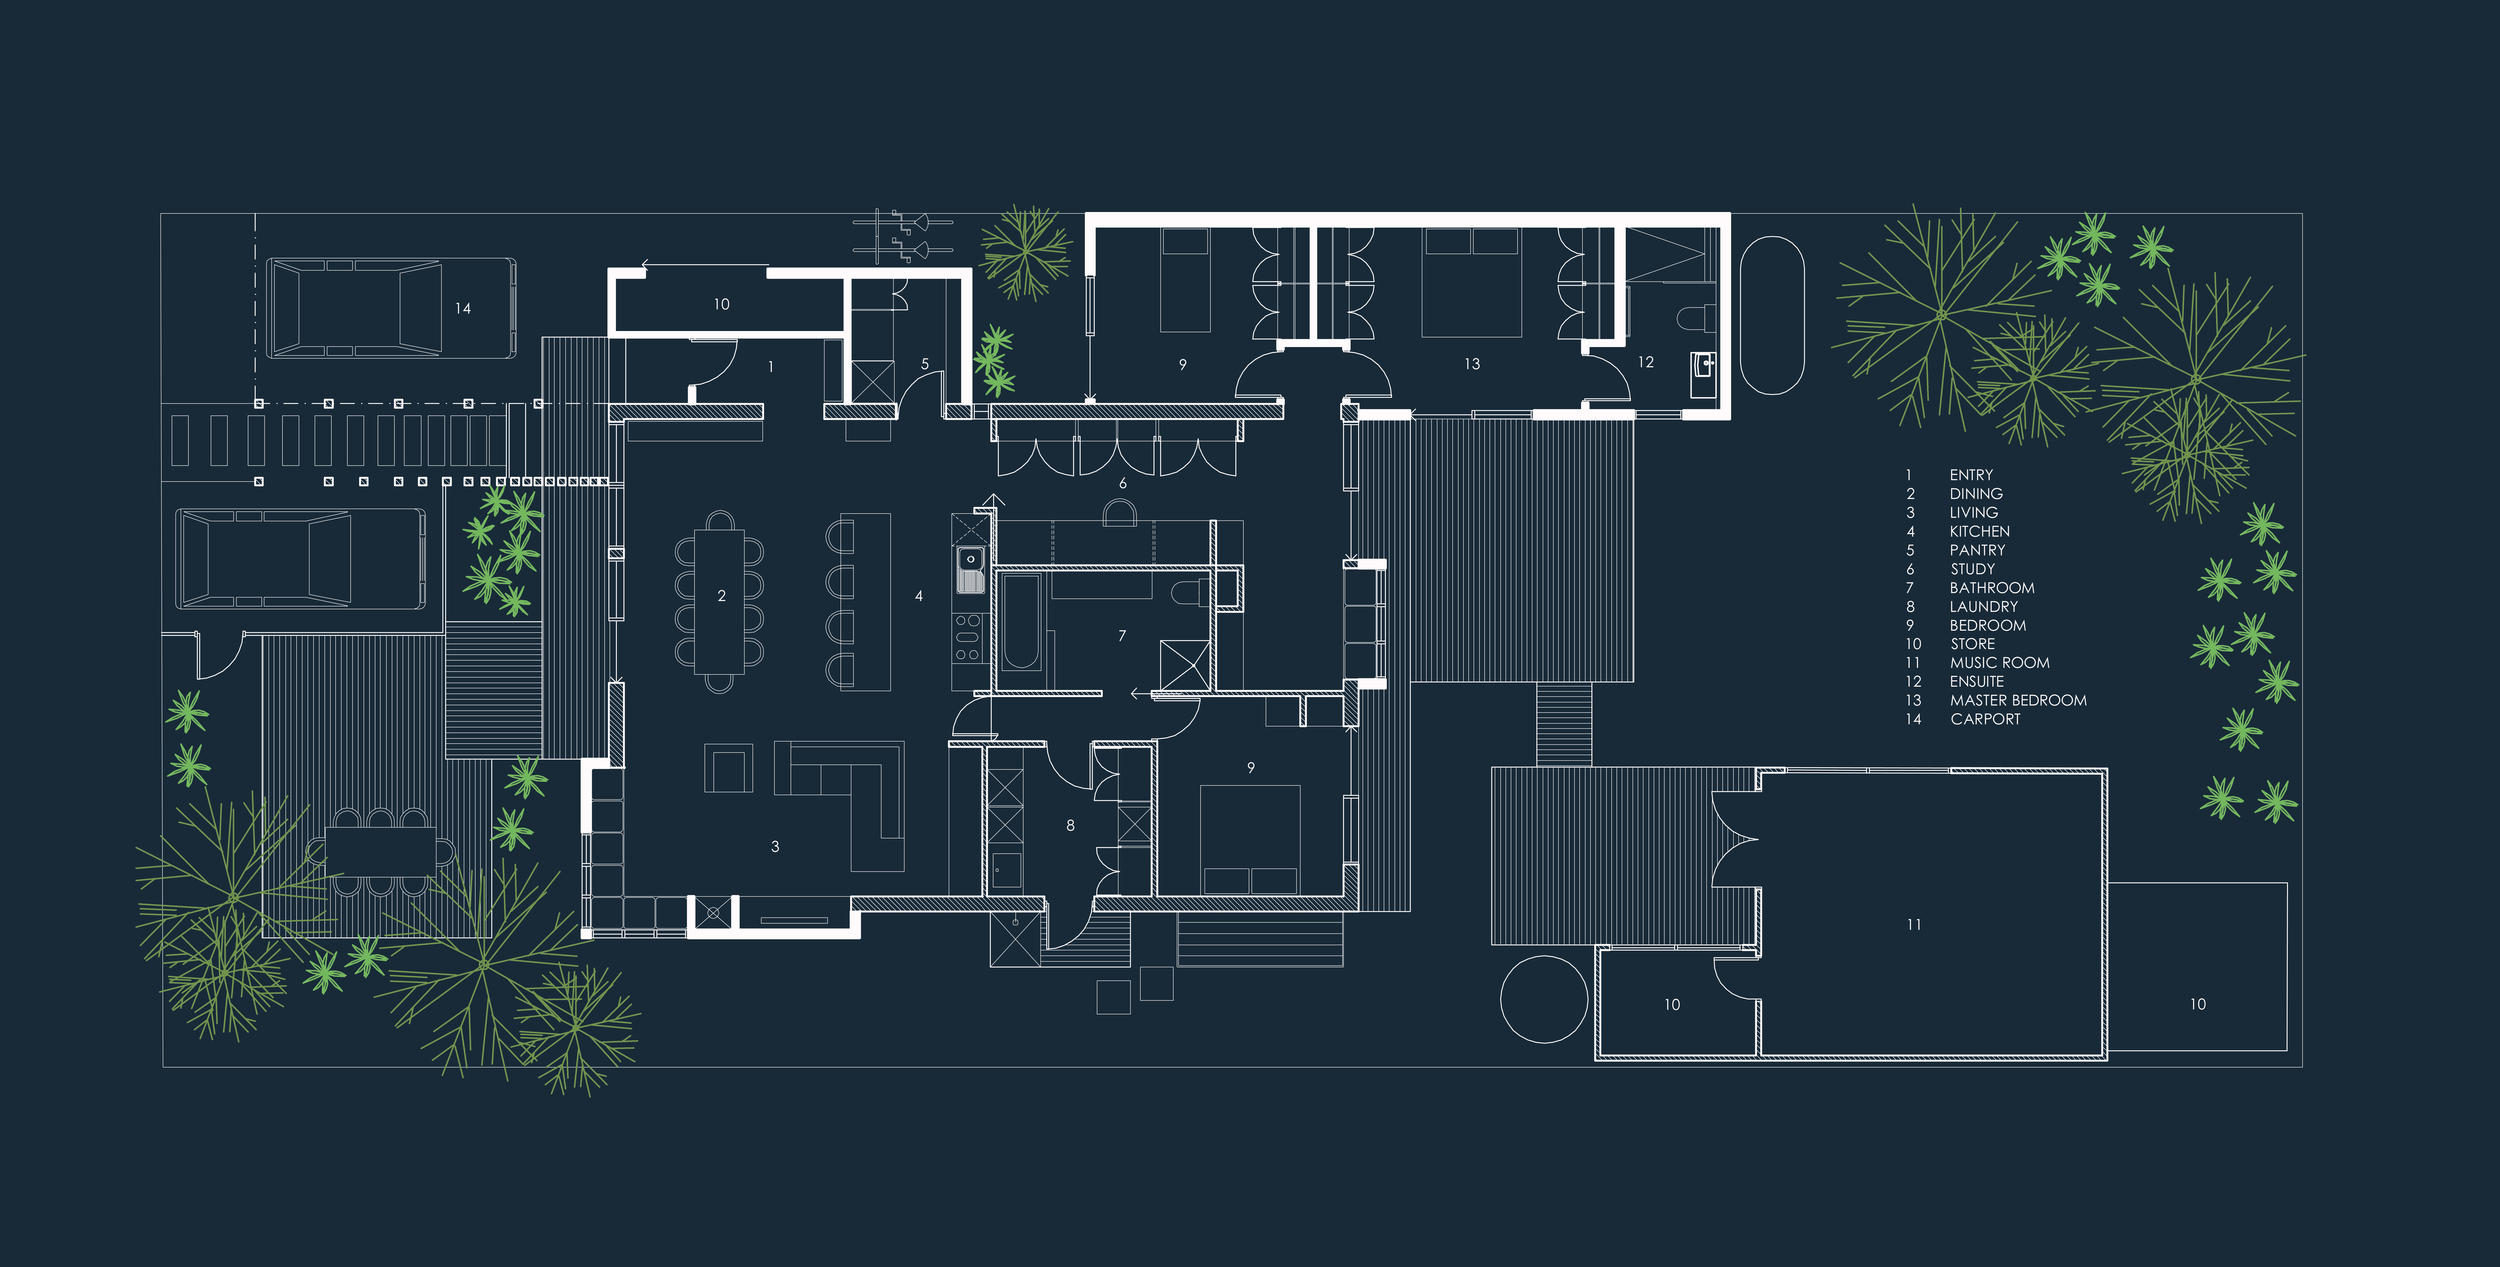 Hogan+Dve+Floor+Plans.jpg